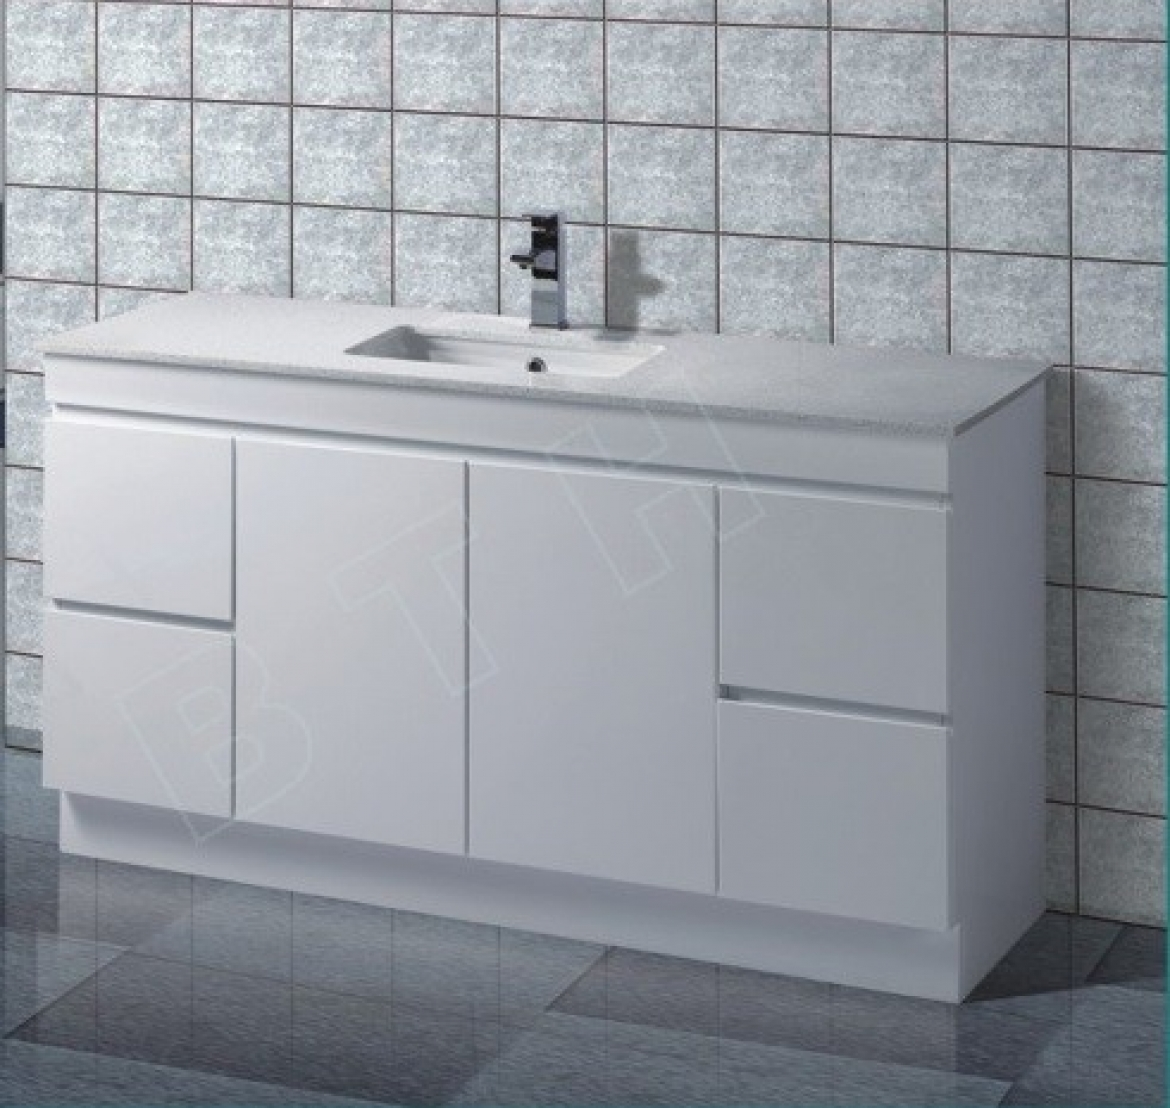 Bathroom stone top vanity [Single Basin-1400 mm]